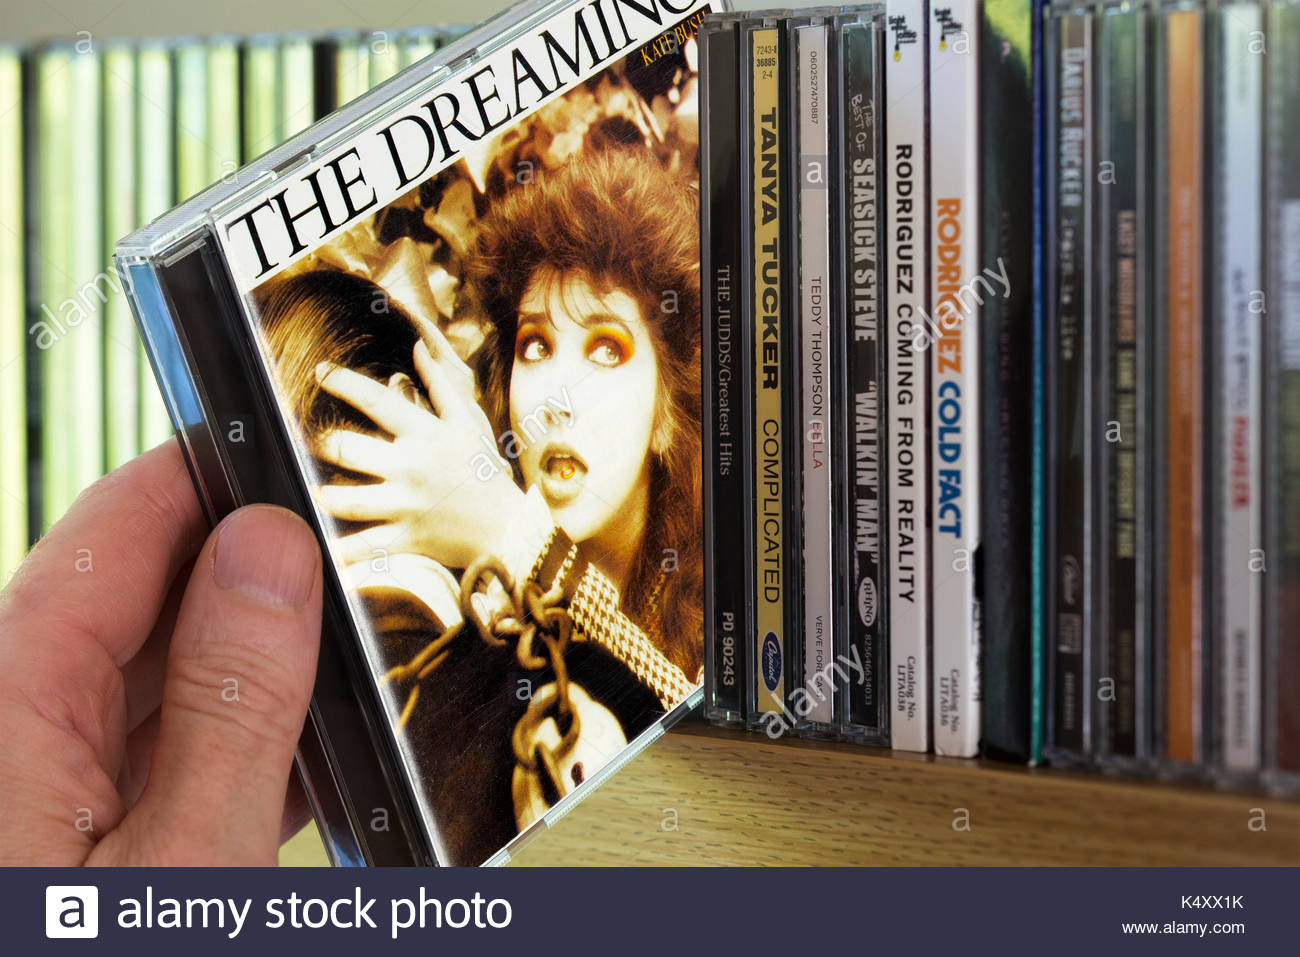 The Dreaming, Kate Bush CD being chosen from a shelf of other CD's, Dorset, England Stock Photo